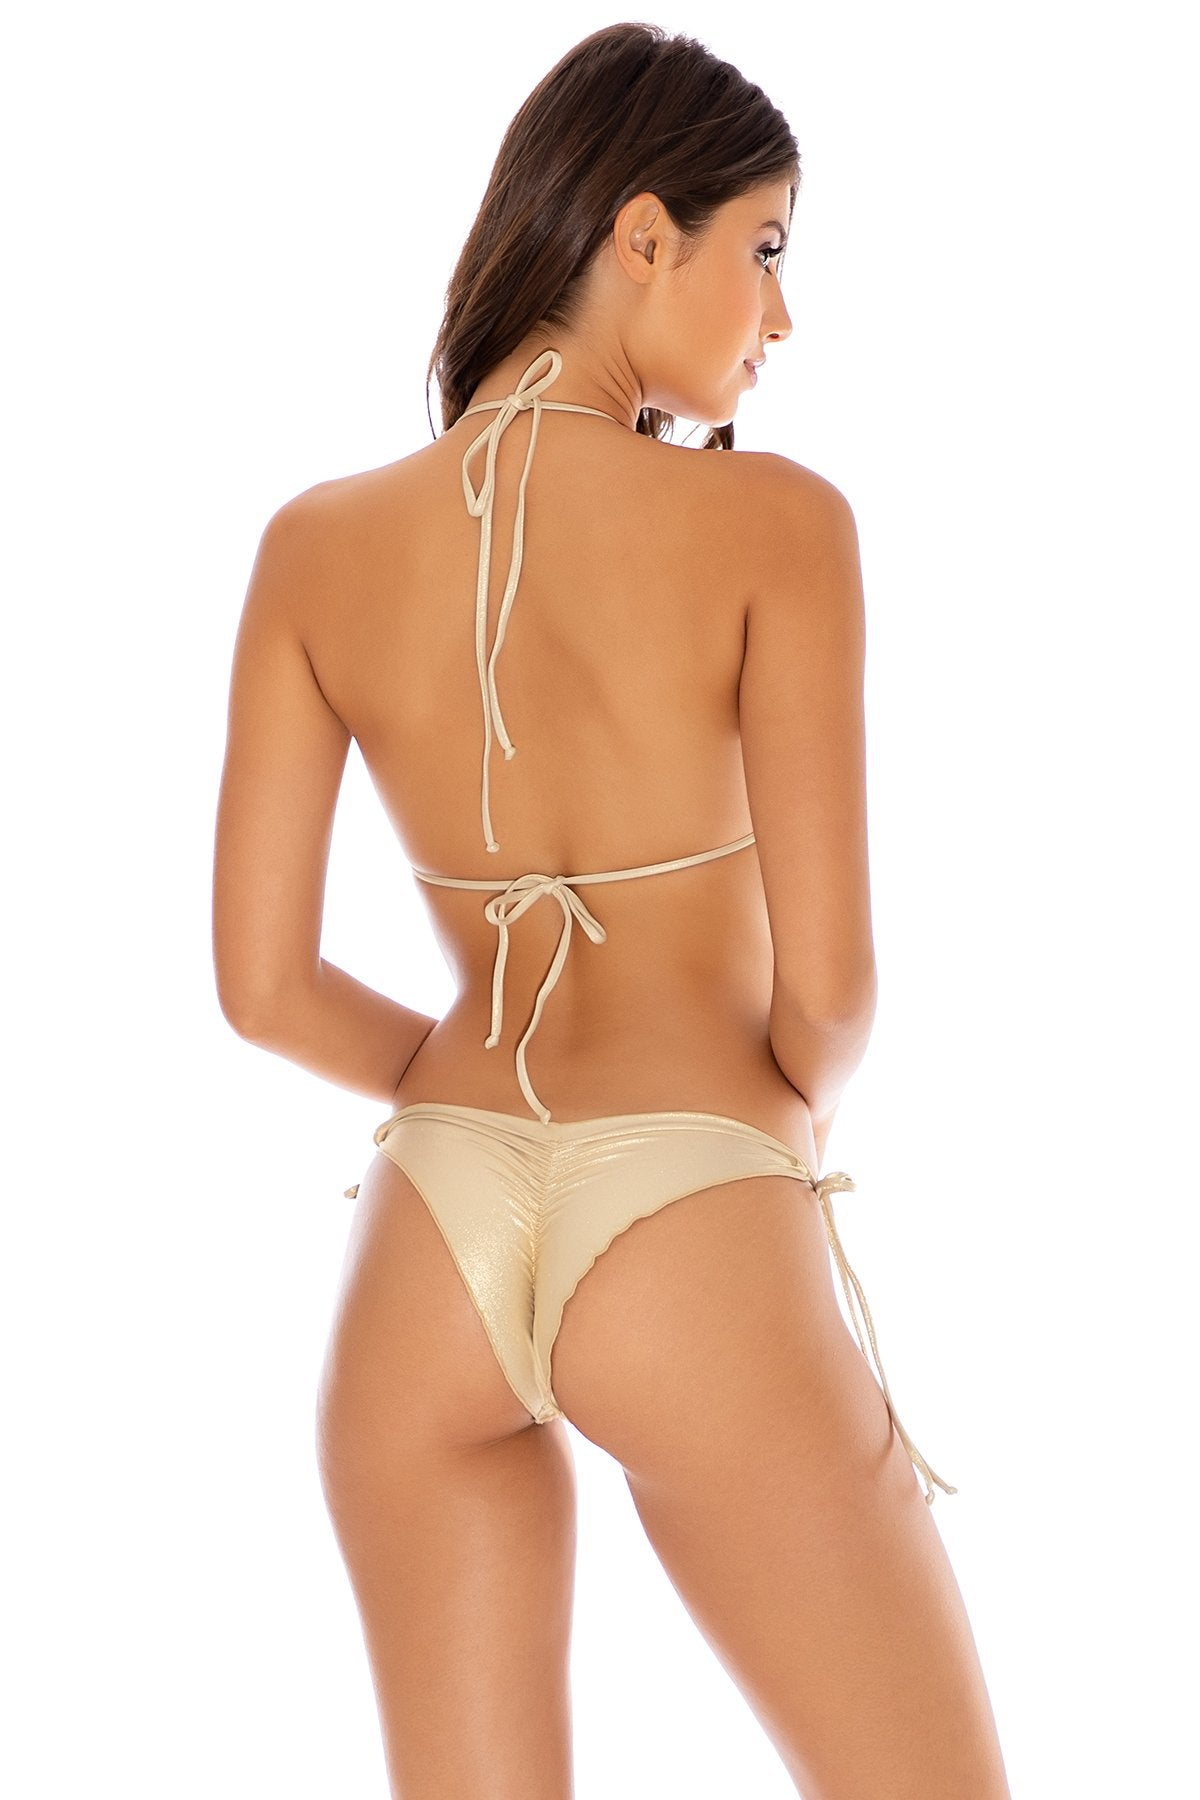 COSITA BUENA - Wavey Triangle Top & Wavey Ruched Back Tie Side Bottom • Gold Rush